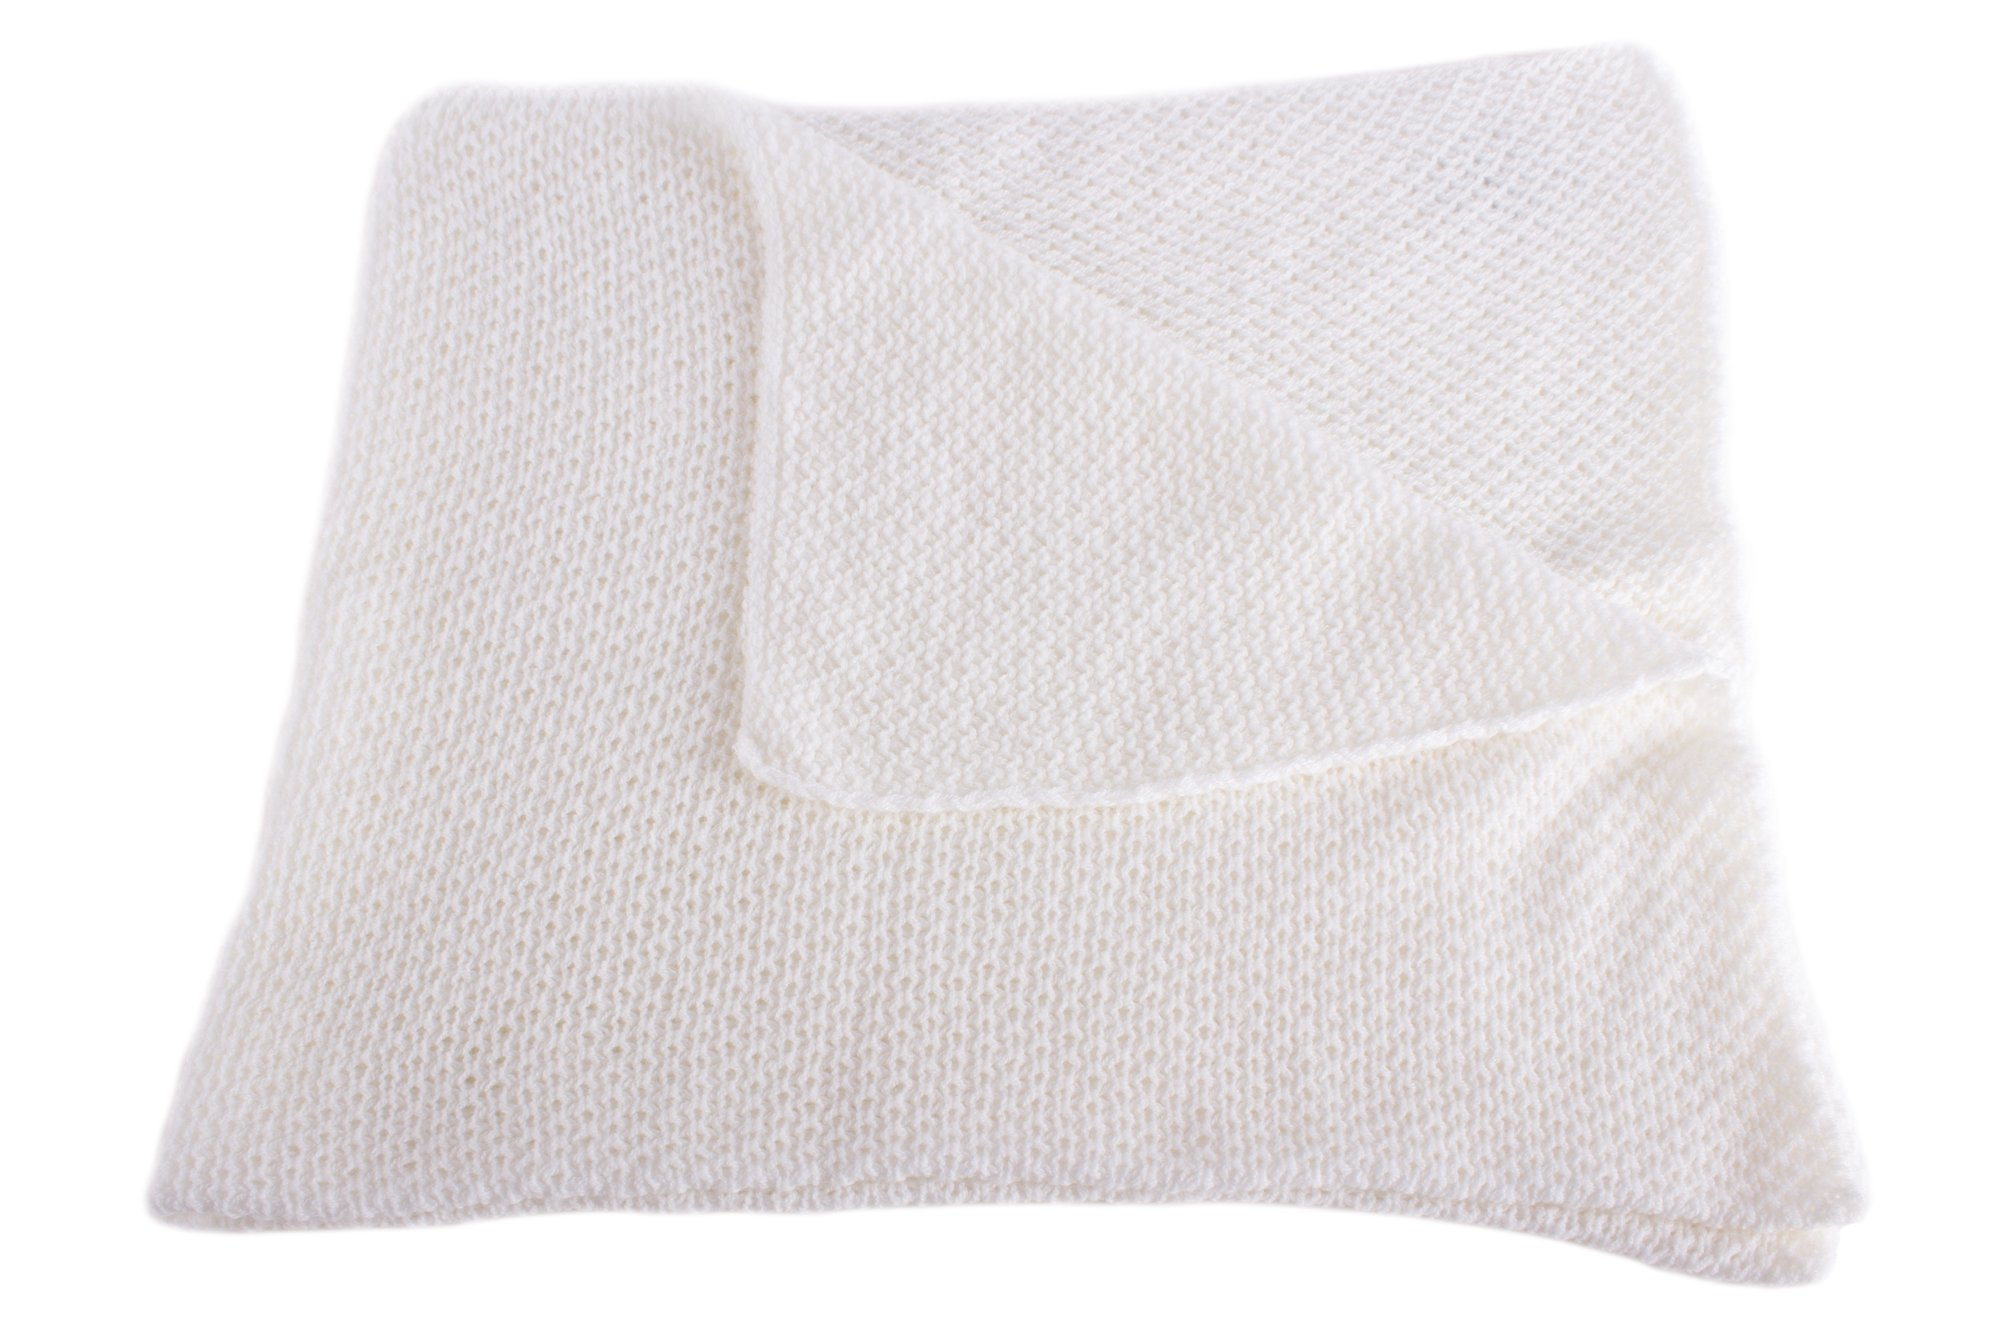 Unisex Super Soft 100% Cashmere Baby Blanket - 'White' - hand made in Scotland by Love Cashmere by Love Cashmere (Image #1)